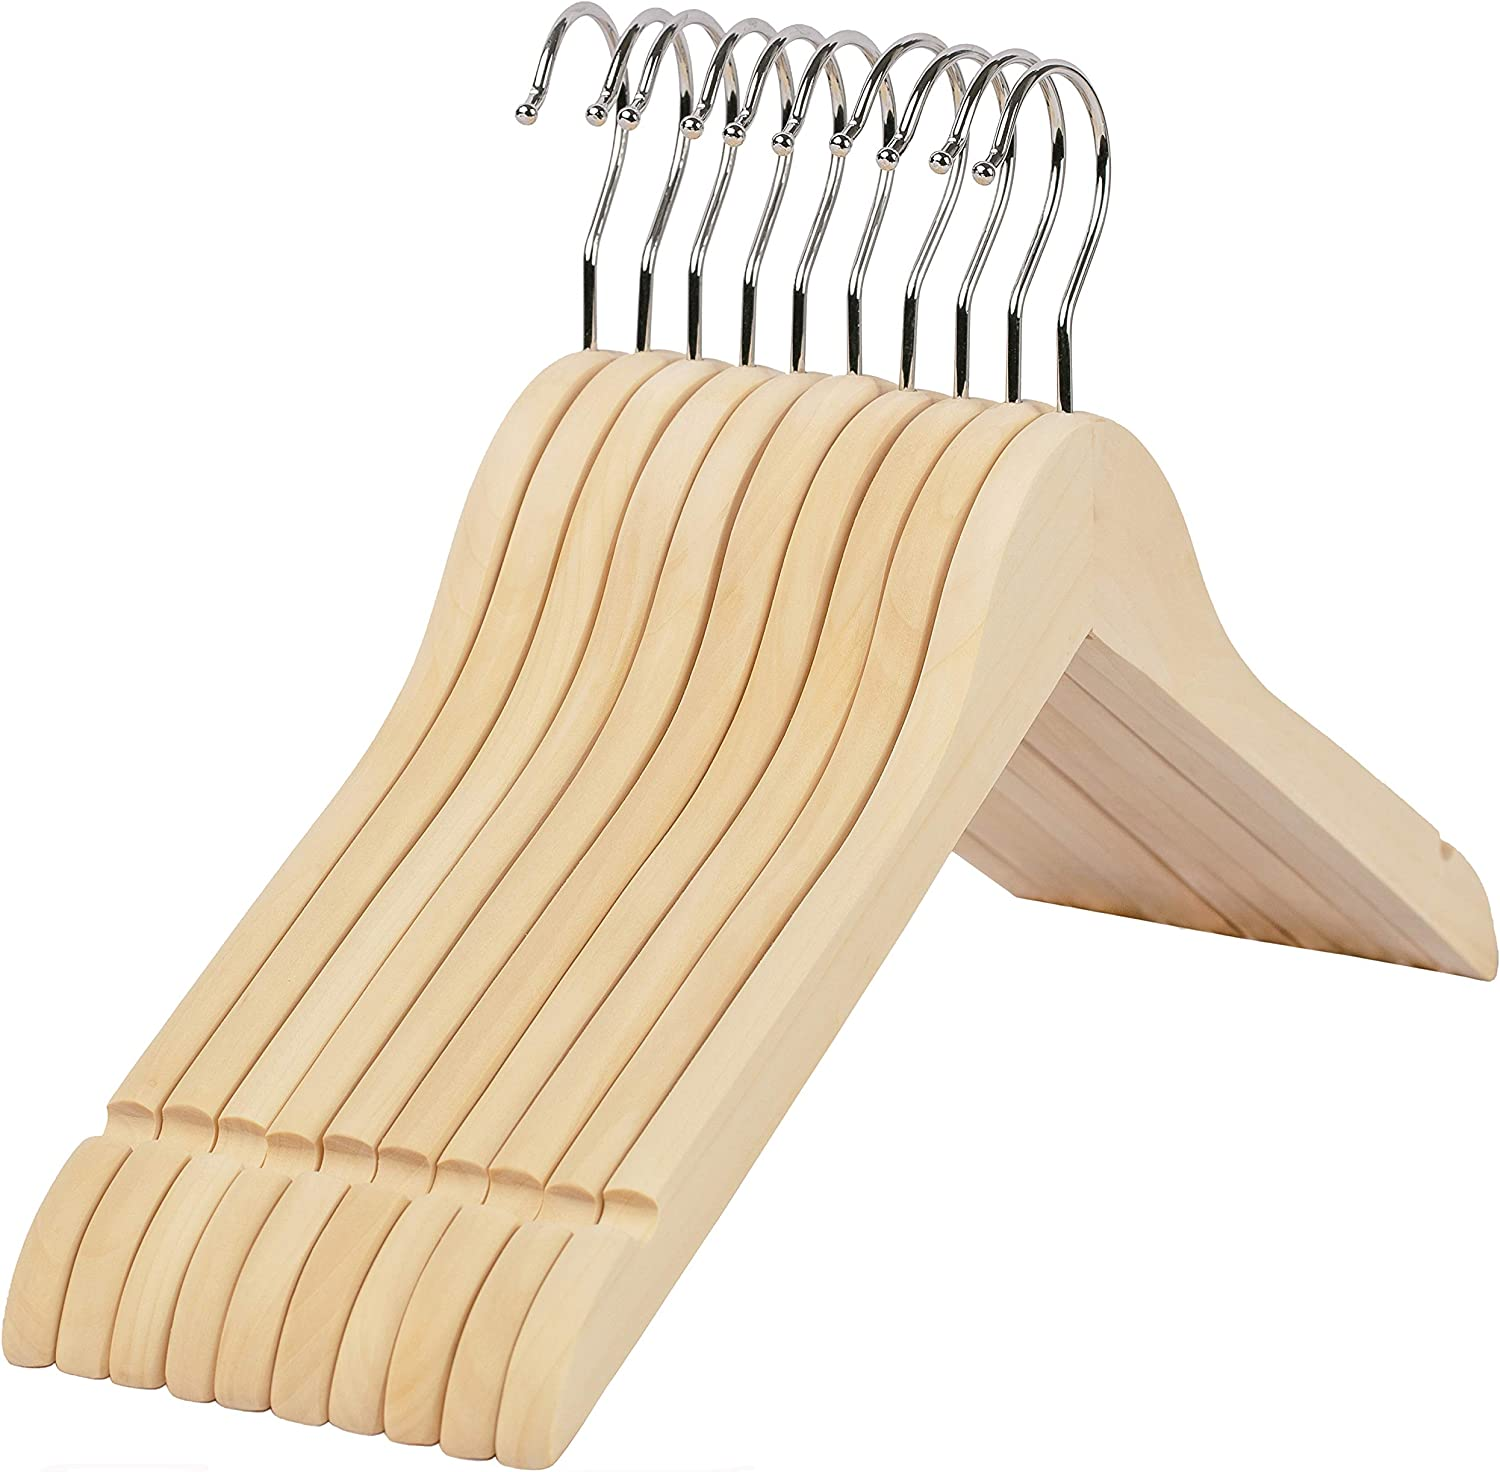 LEMU HOME Premium Adult Solid Unfinished/Natural Wood Coat Suit Shirt Jacket Dress Hangers, Wooden Clothes Hangers- 360° Stronger Swivel Hook- Smoothly Cut Notches-10 Pack- Natural Color LM01U